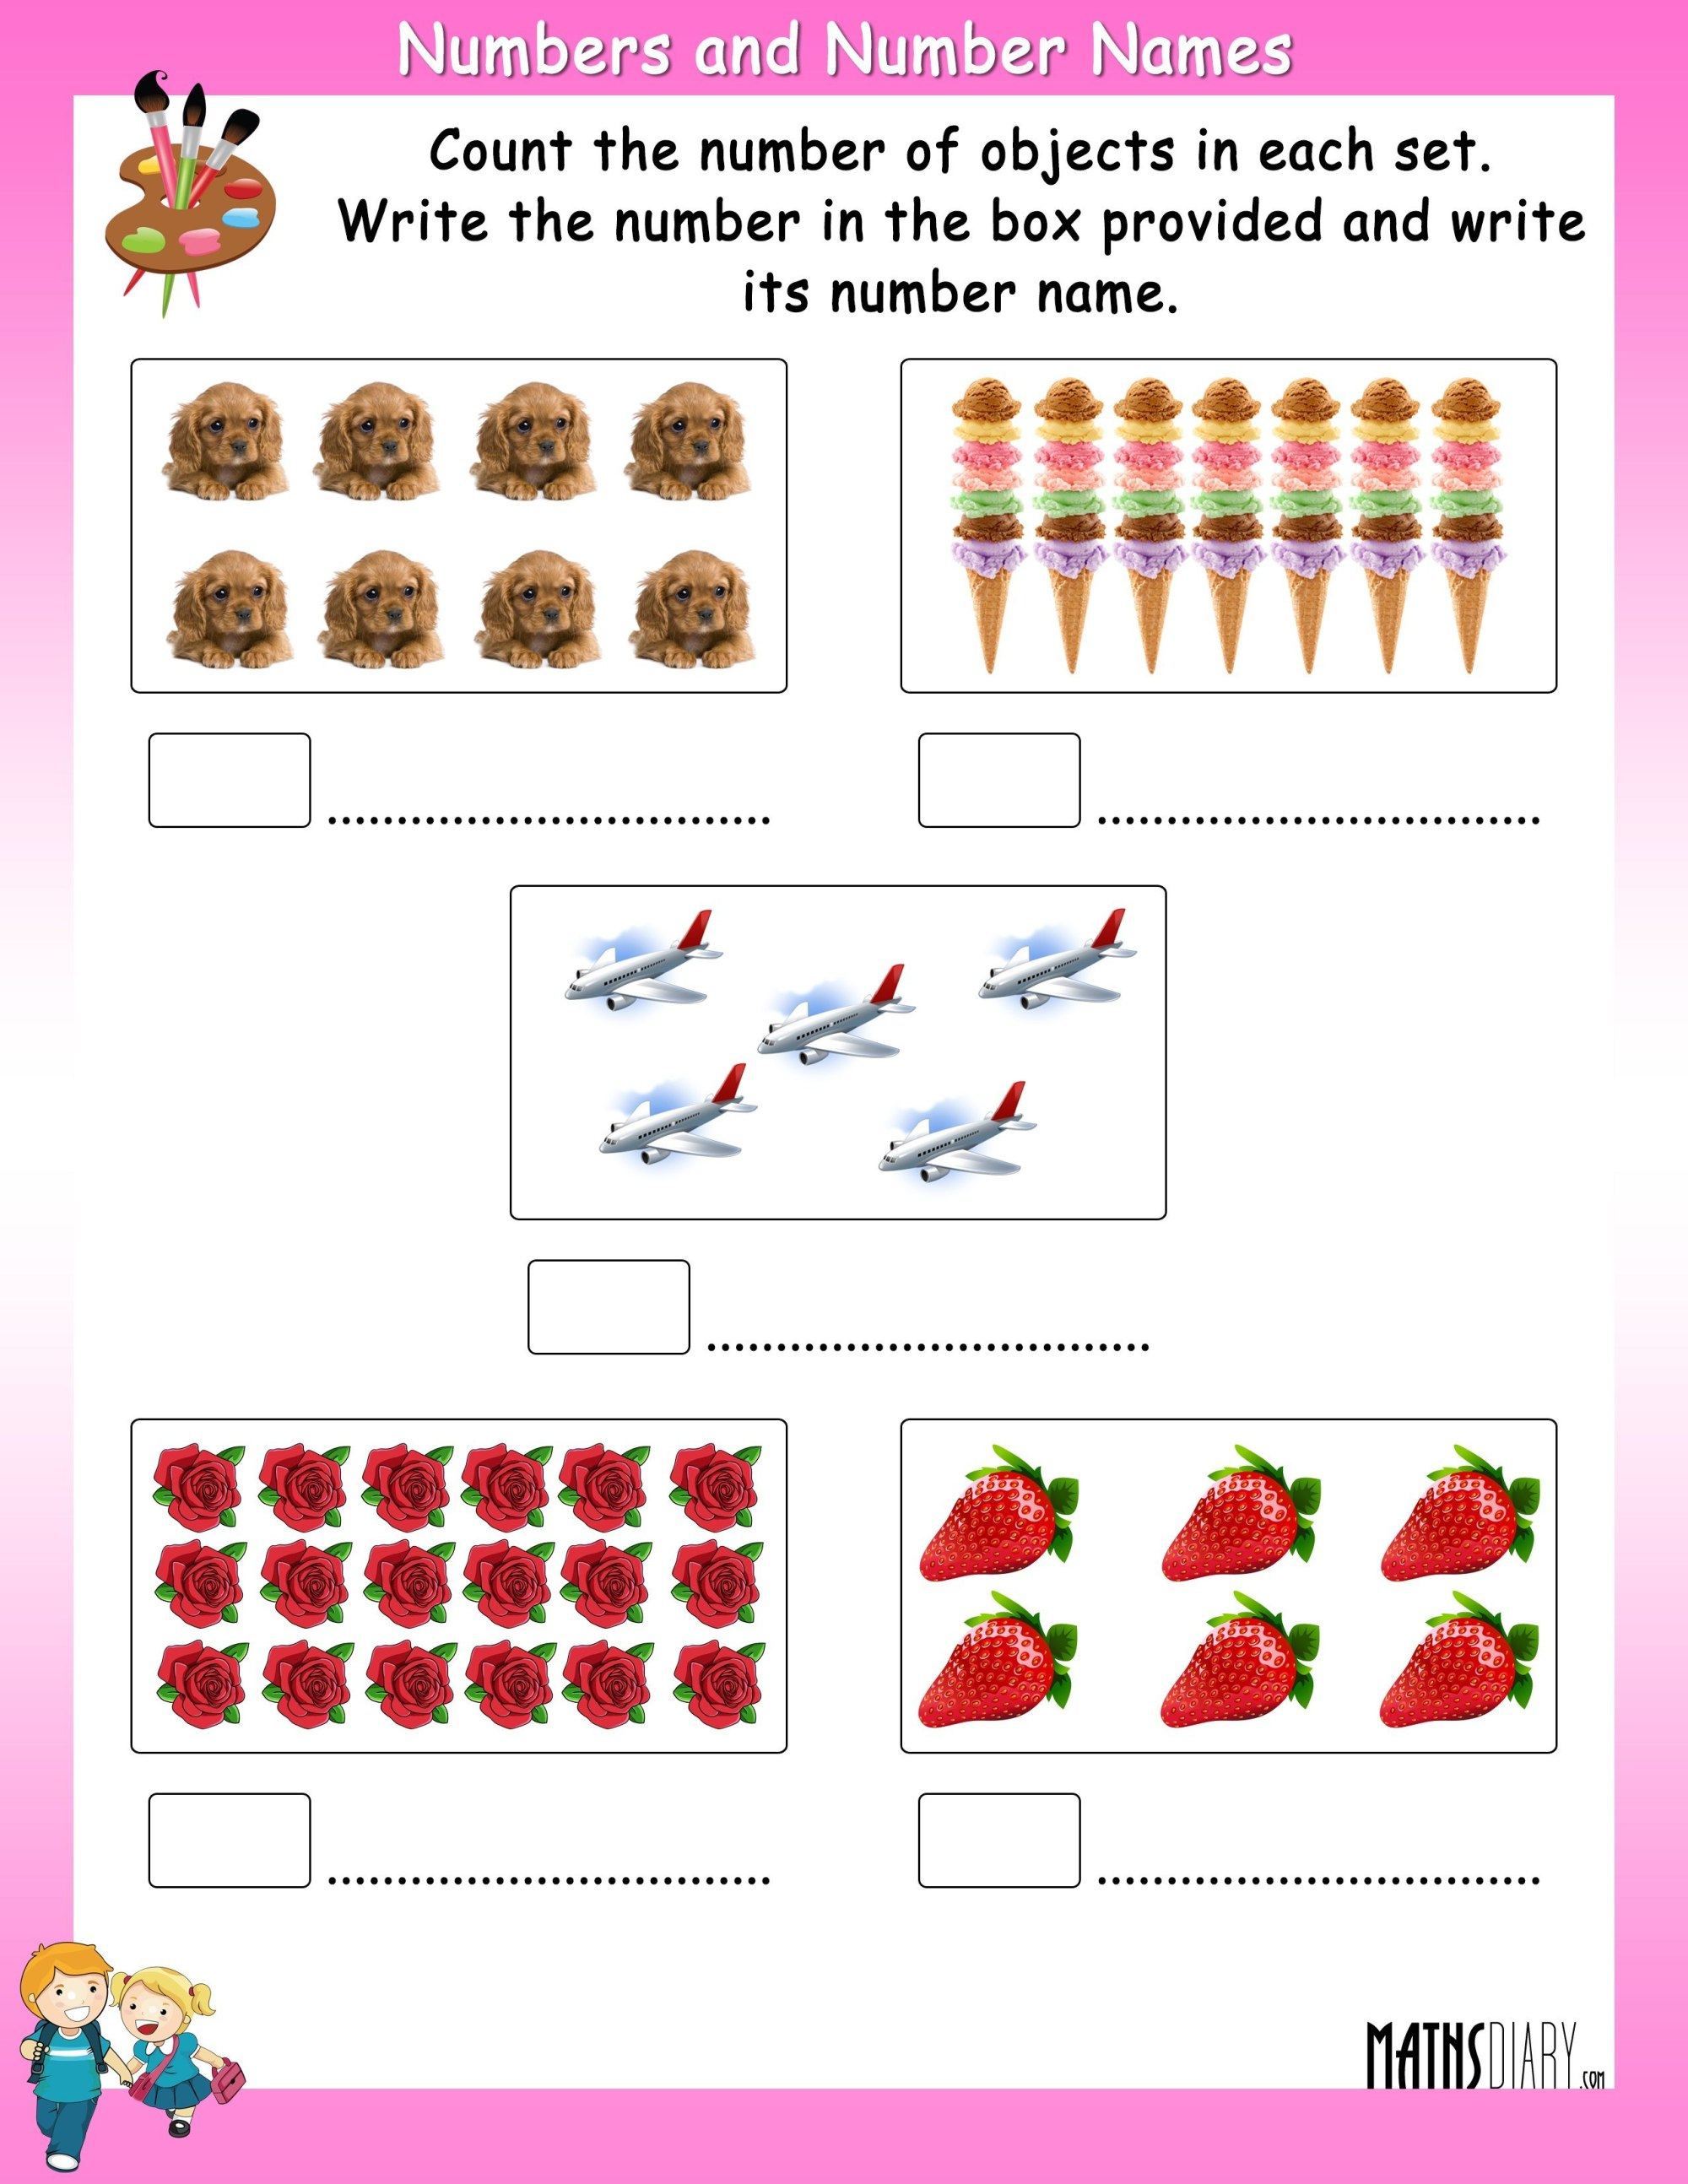 hight resolution of Count the objects in each set and write its number and number name-  Worksheets - Math Worksheets - MathsDiary.com